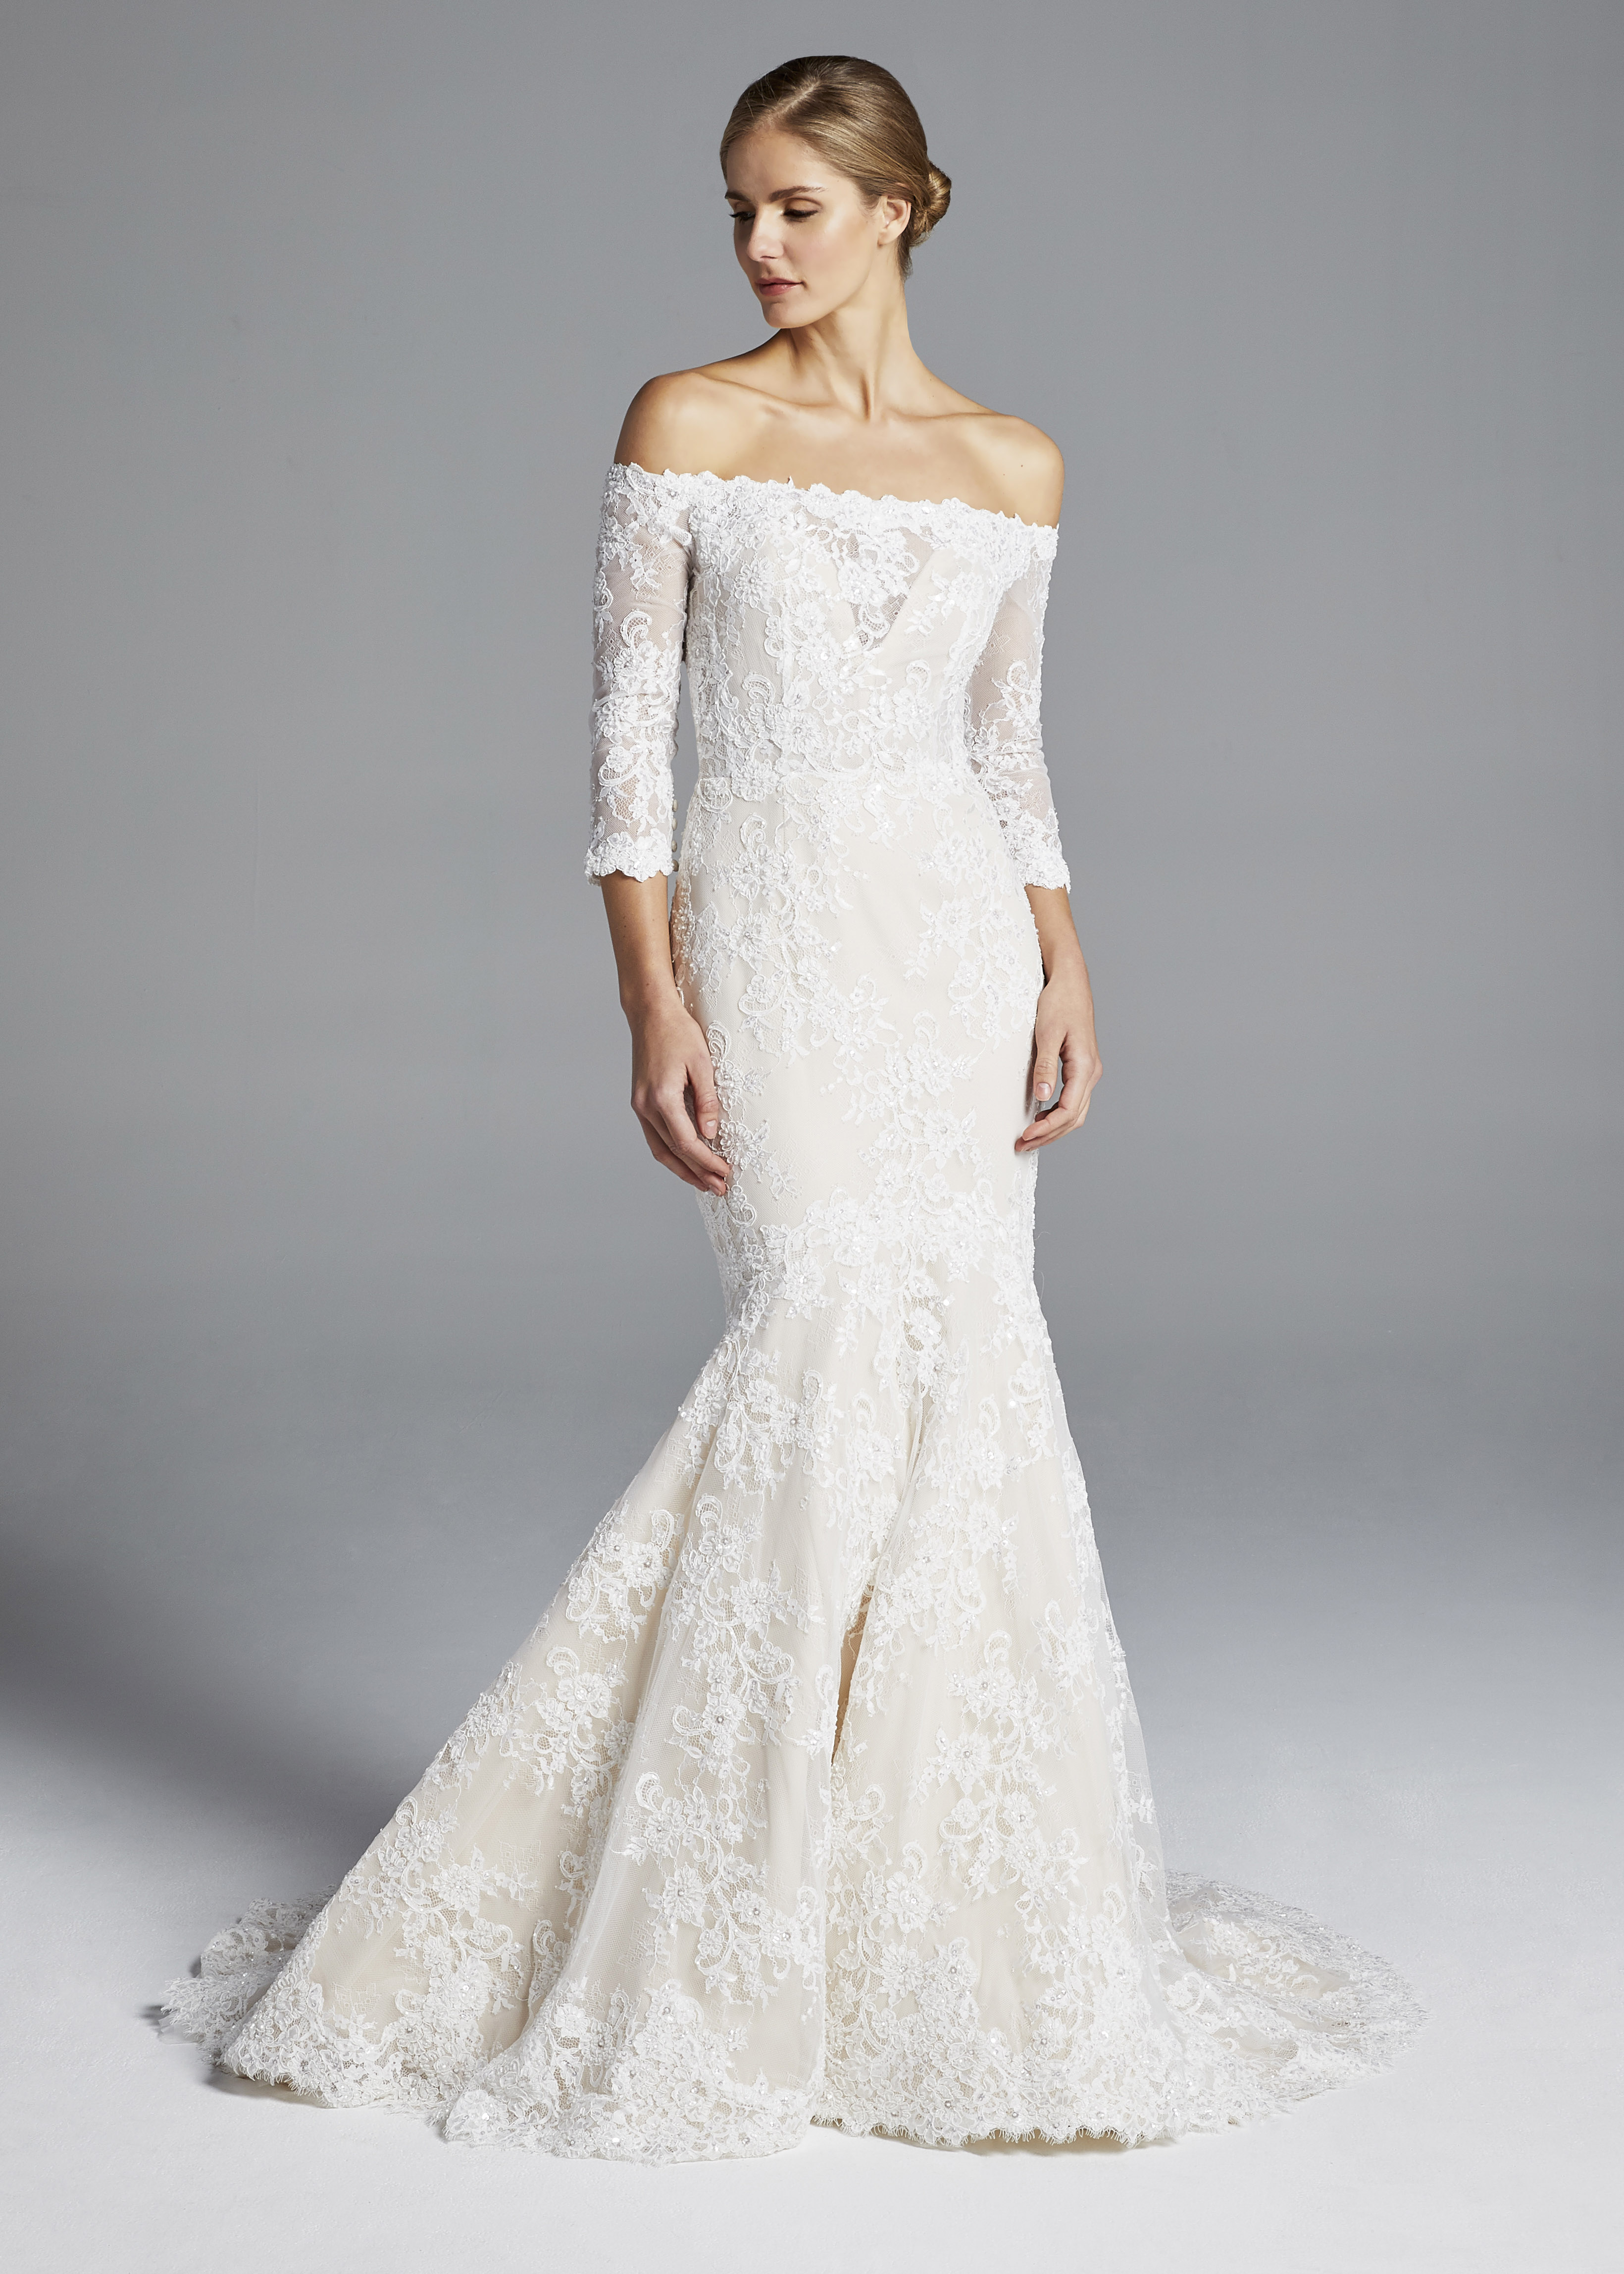 anne barge off the shoulder lace mermaid wedding dress spring 2019